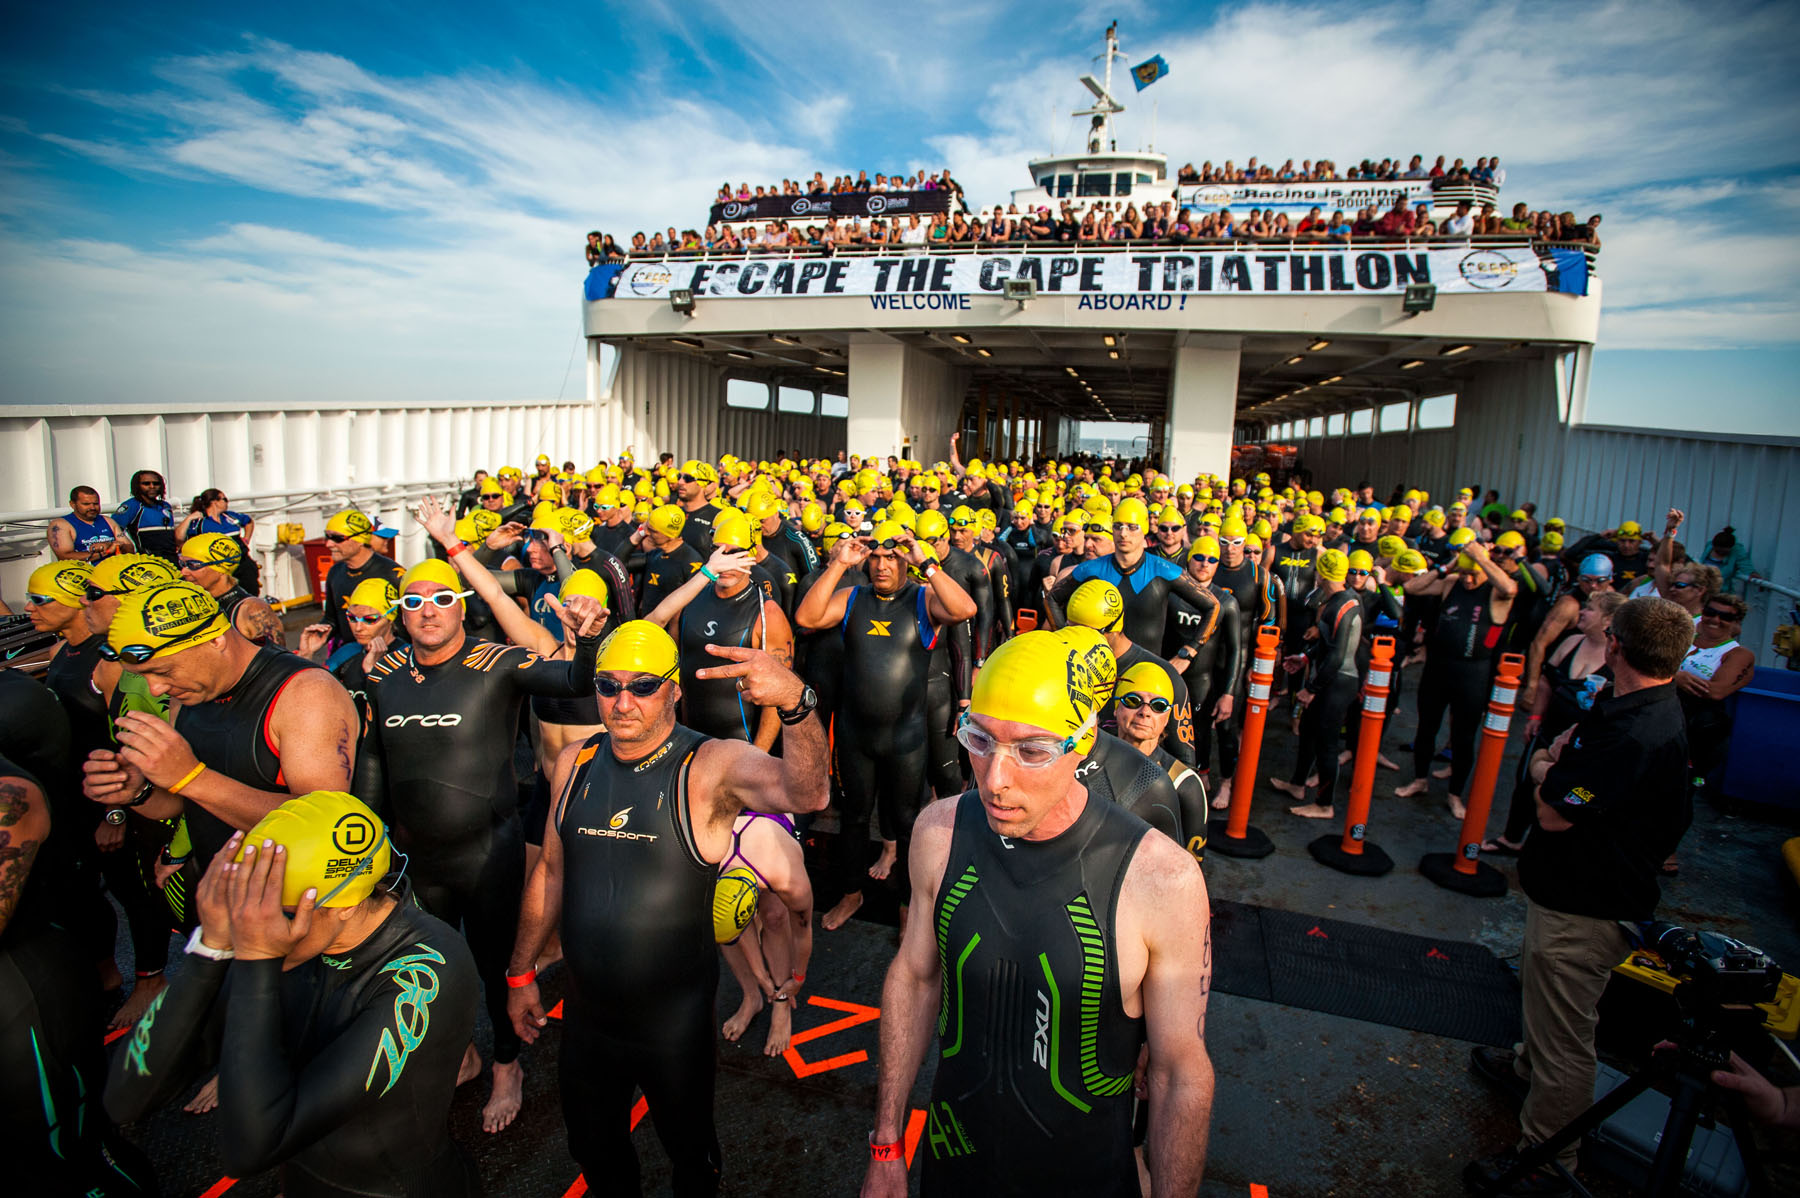 Anxious triathletes  - Escape The Cape Triathlon